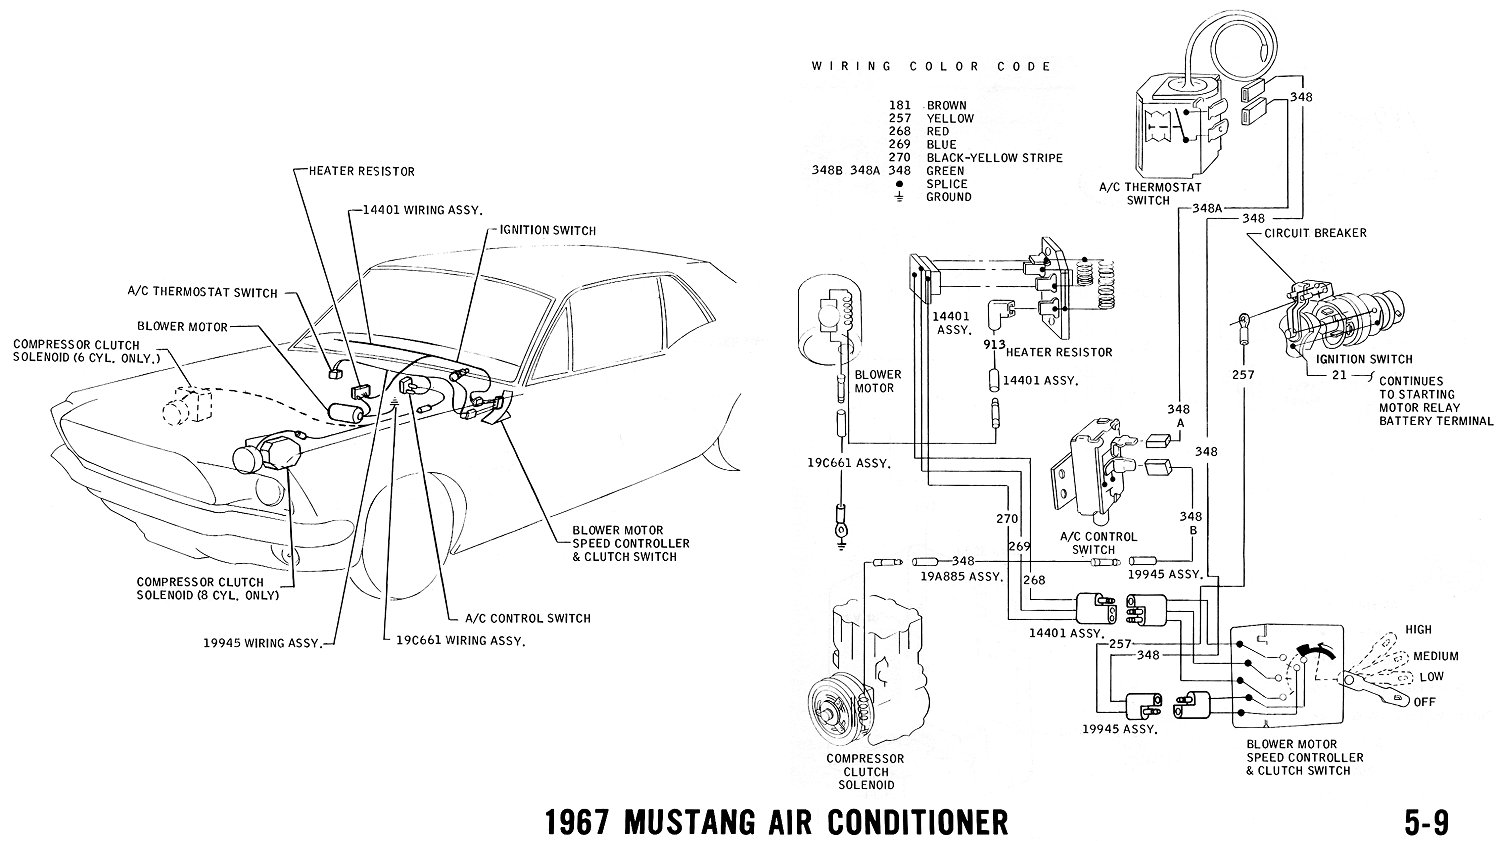 67ac 1970 mustang ac control wiring diagram 1970 ford alternator wiring 67 mustang wiring harness at crackthecode.co